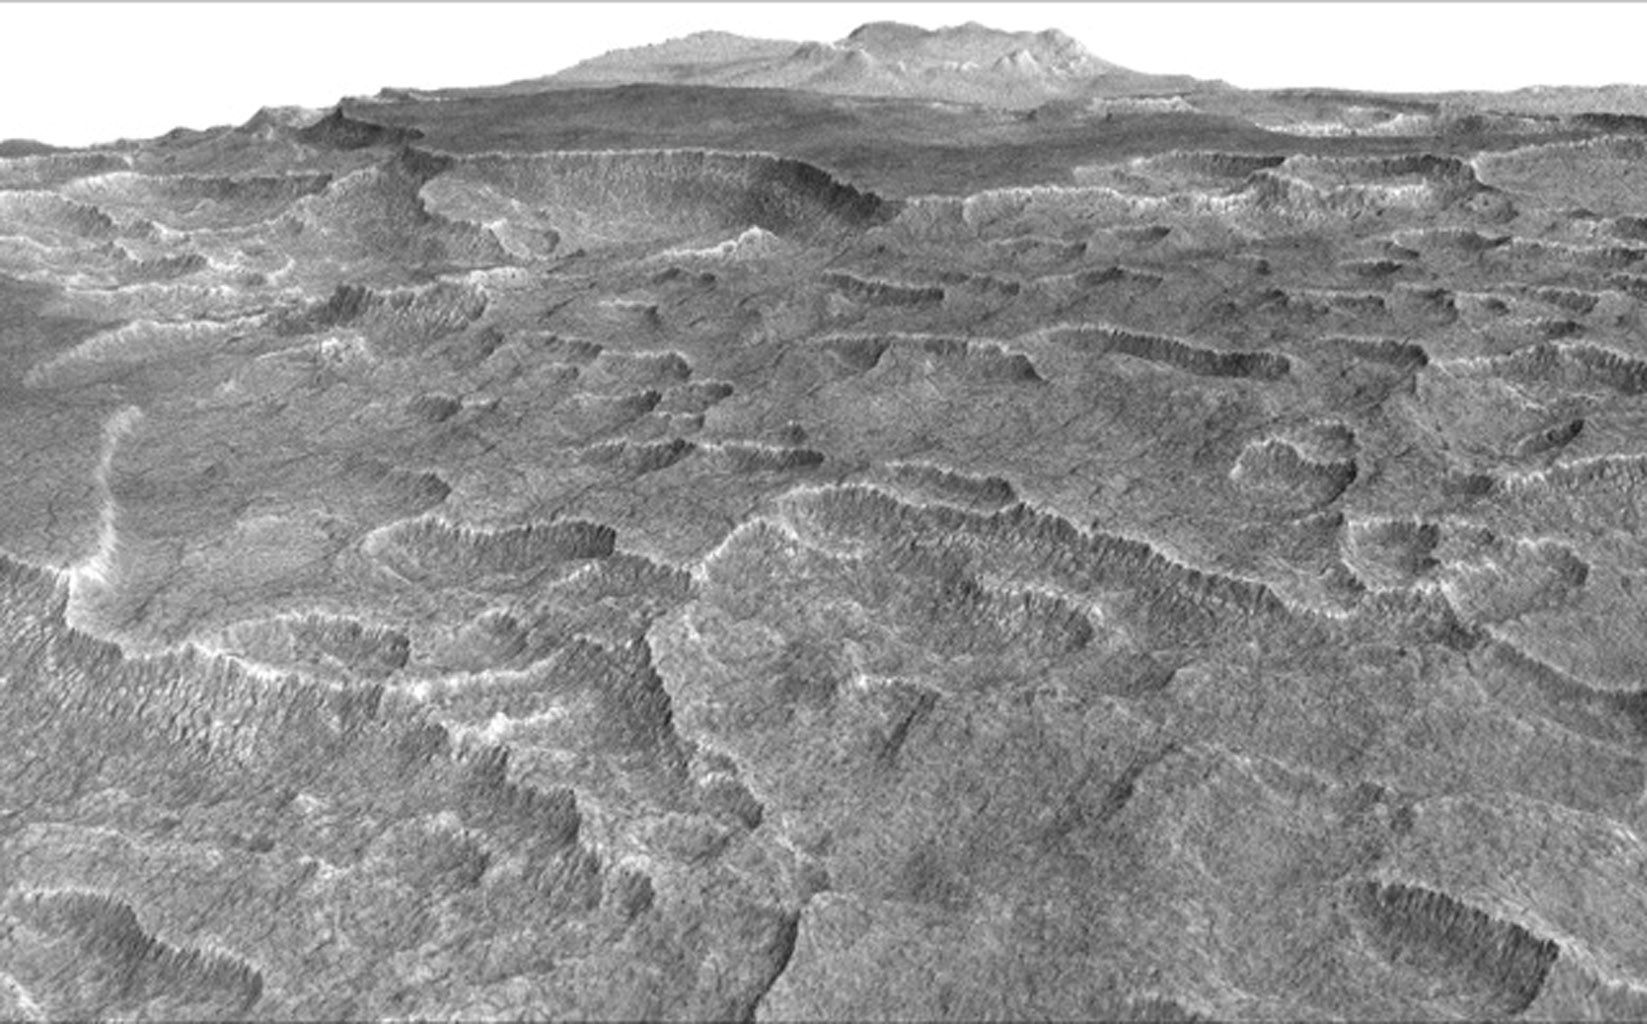 This vertically exaggerated view shows scalloped depressions in Mars' Utopia Planitia region, prompting the use of ground-penetrating radar aboard NASA's Mars Reconnaissance Orbiter to check for underground ice.